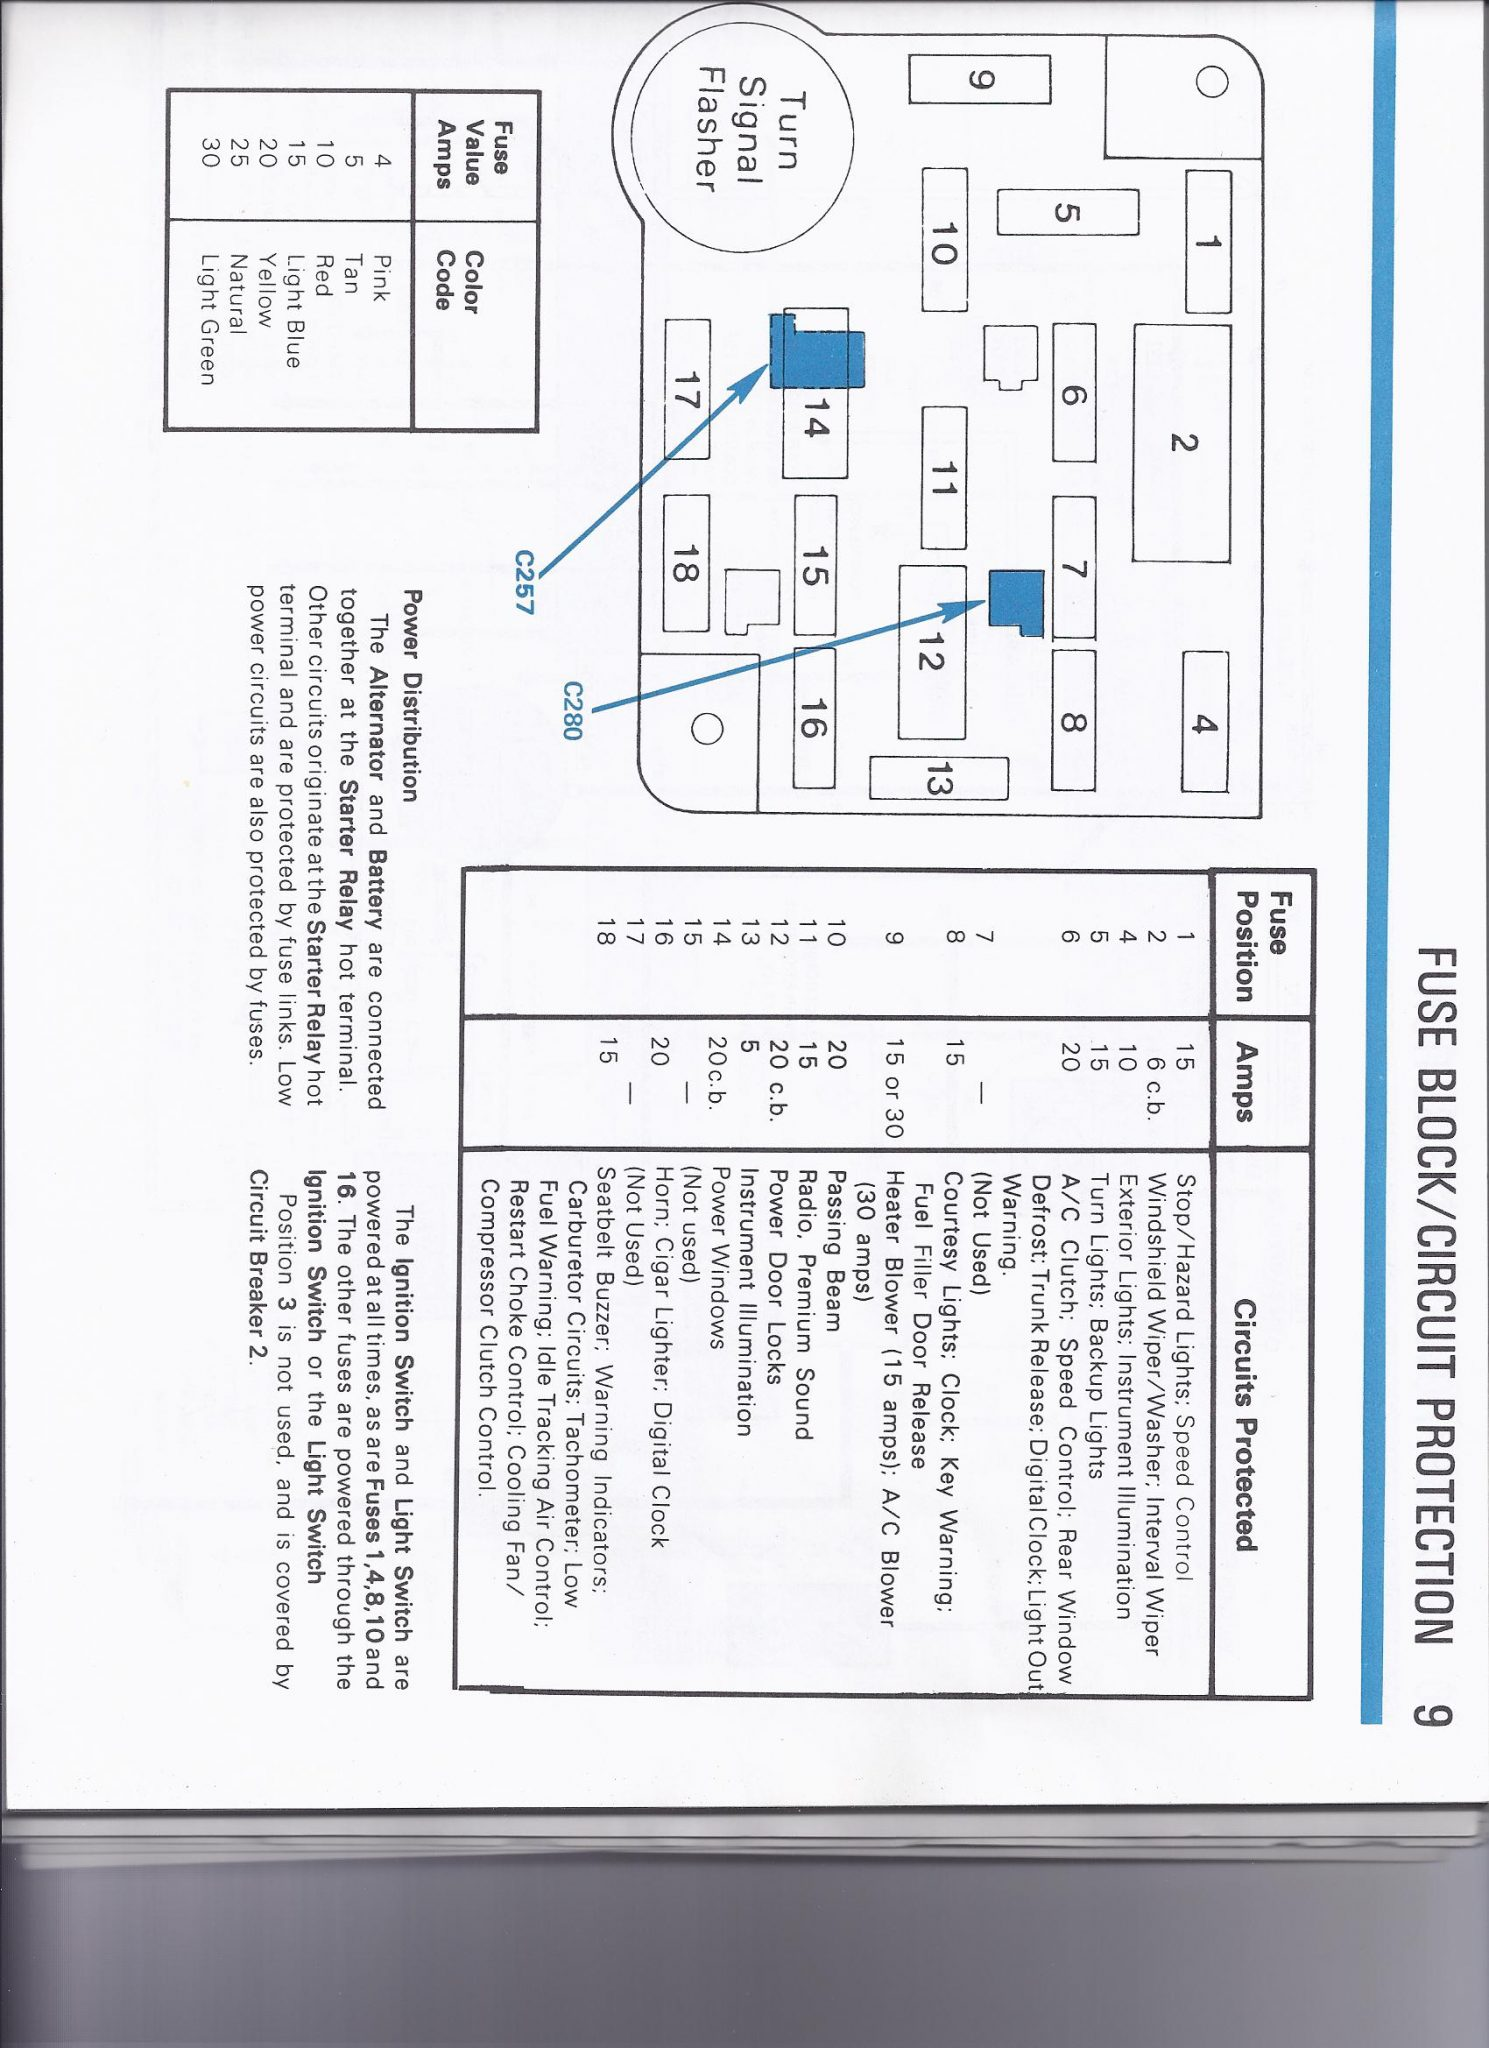 1984 Mustang Fuse Box Example Electrical Wiring Diagram \u2022 2002 Ford Mustang  Fuse Box 1984 Mustang Fuse Box